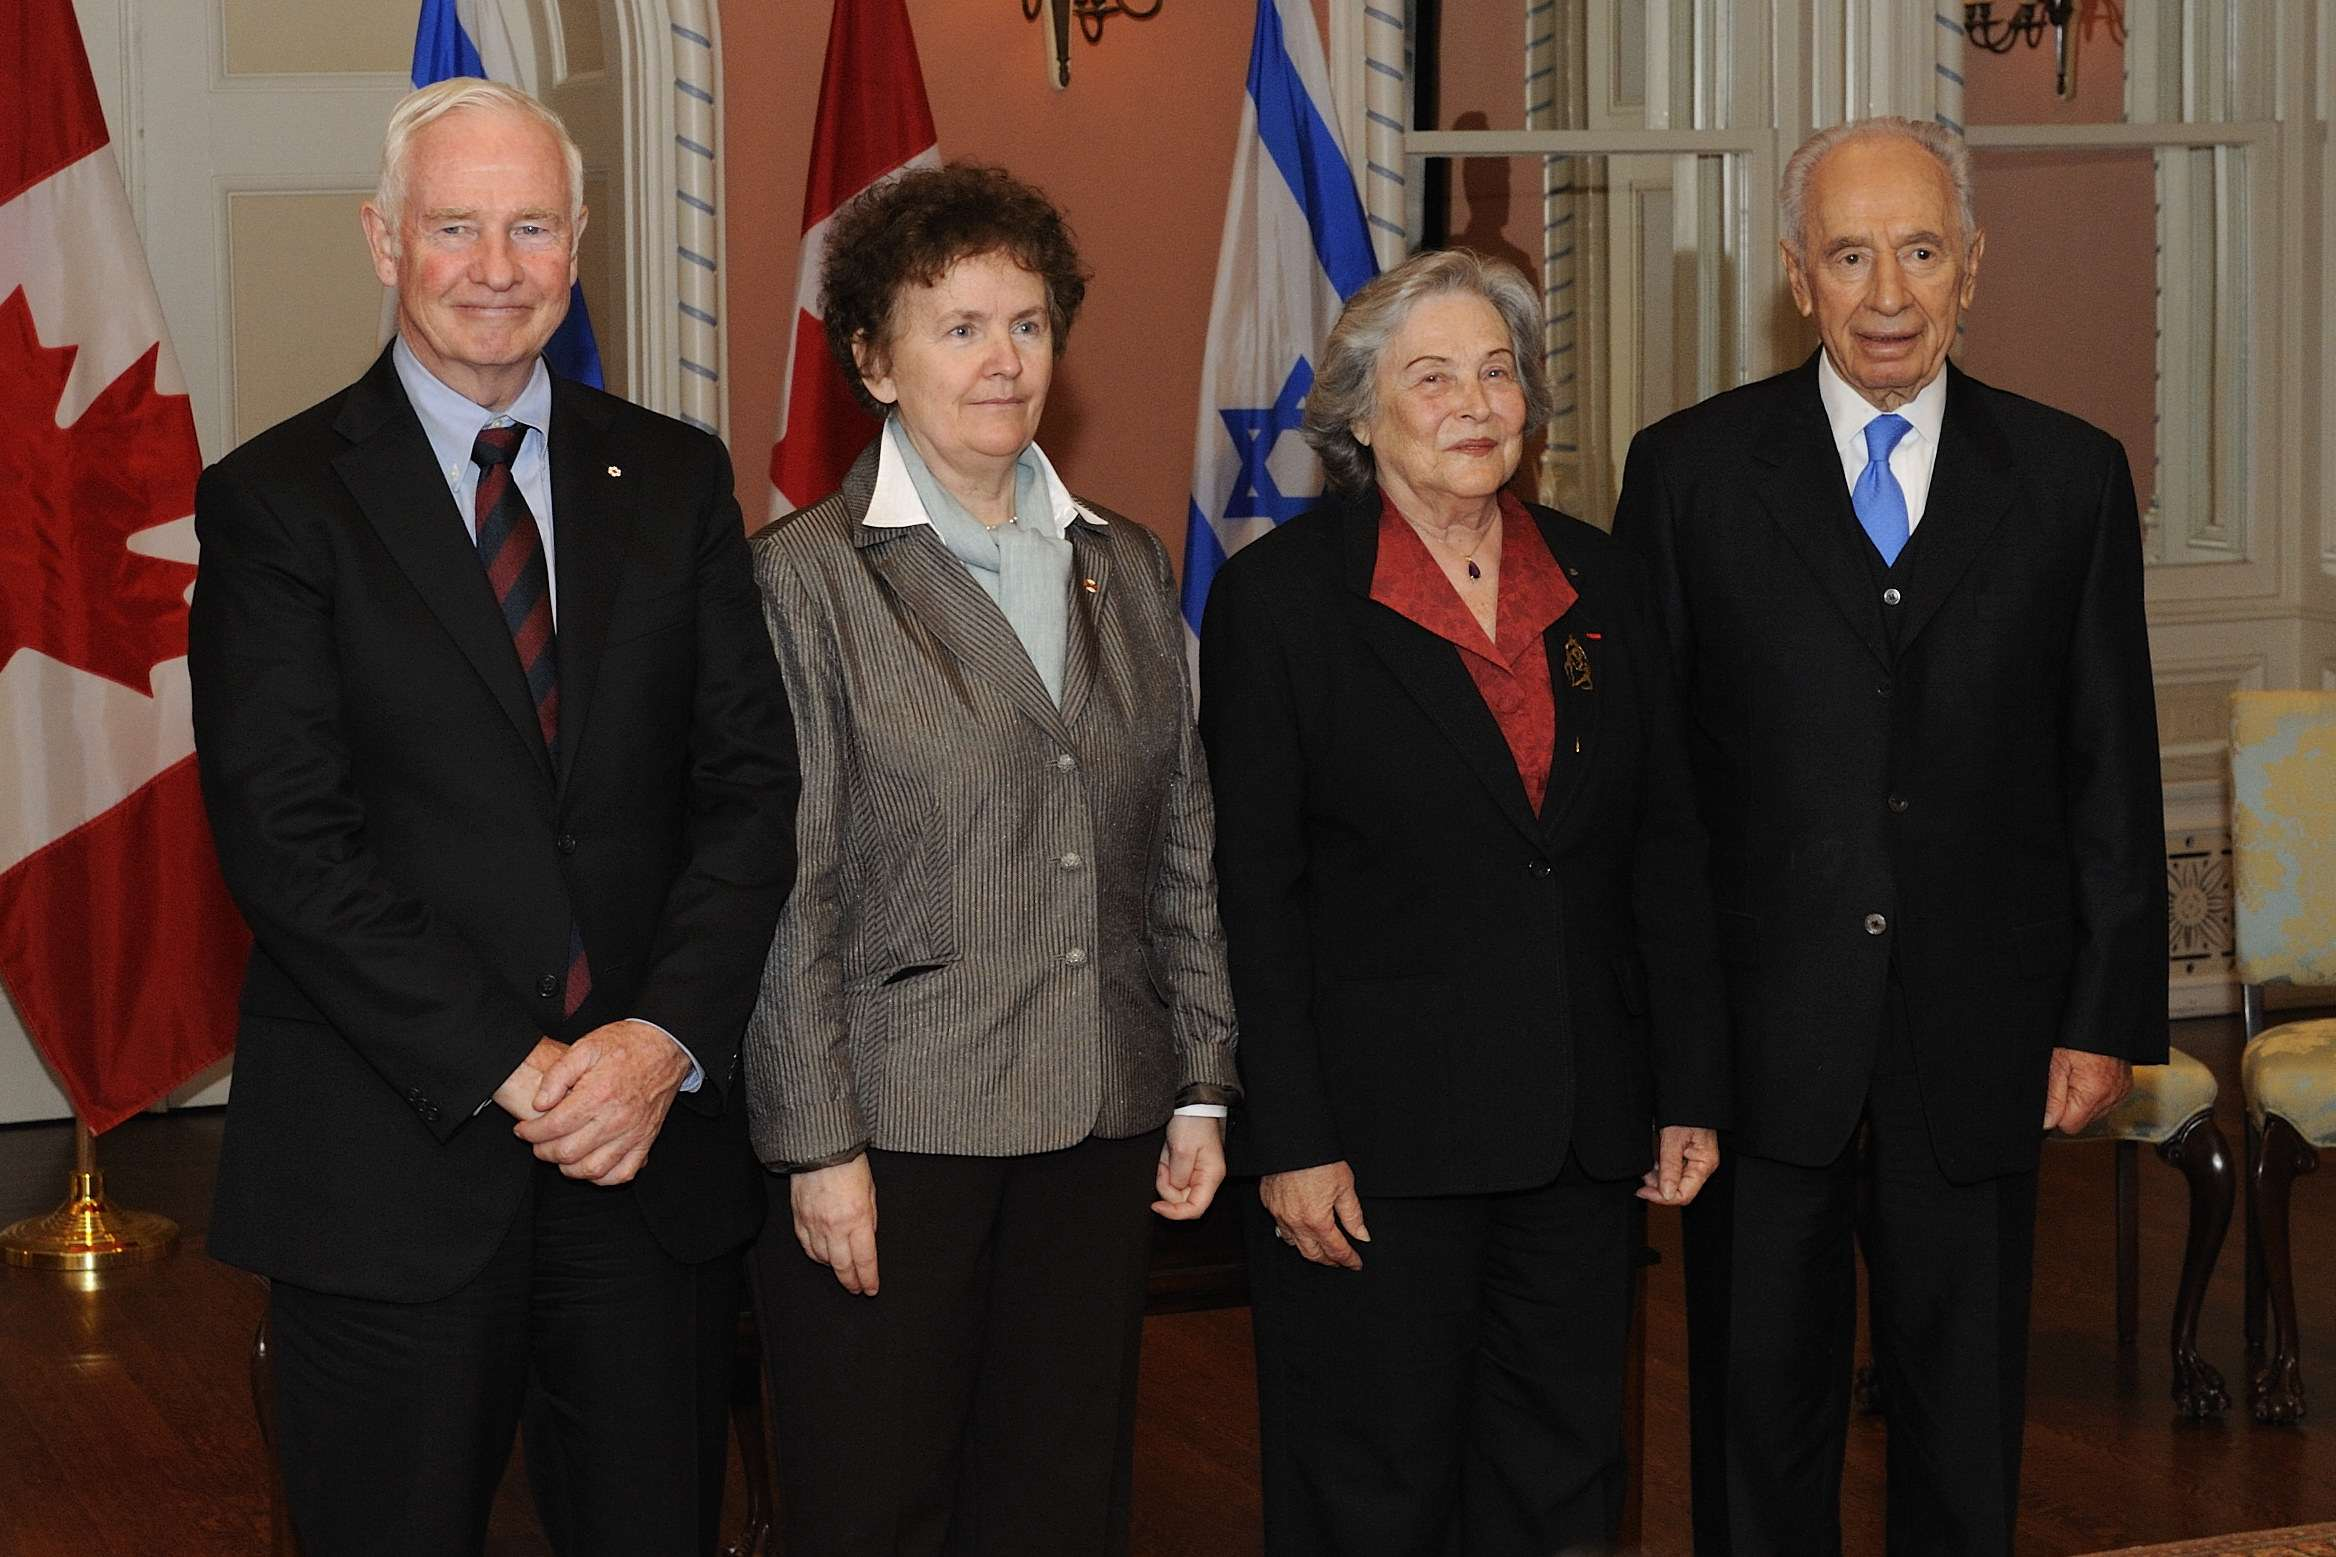 The signatories were Ms. Yolande Grisé, President of the Royal Society of Ottawa (next to the Governor General), and Professor Ruth Arnon, President of the Israel Academy of Sciences and Humanities (next to President Peres).